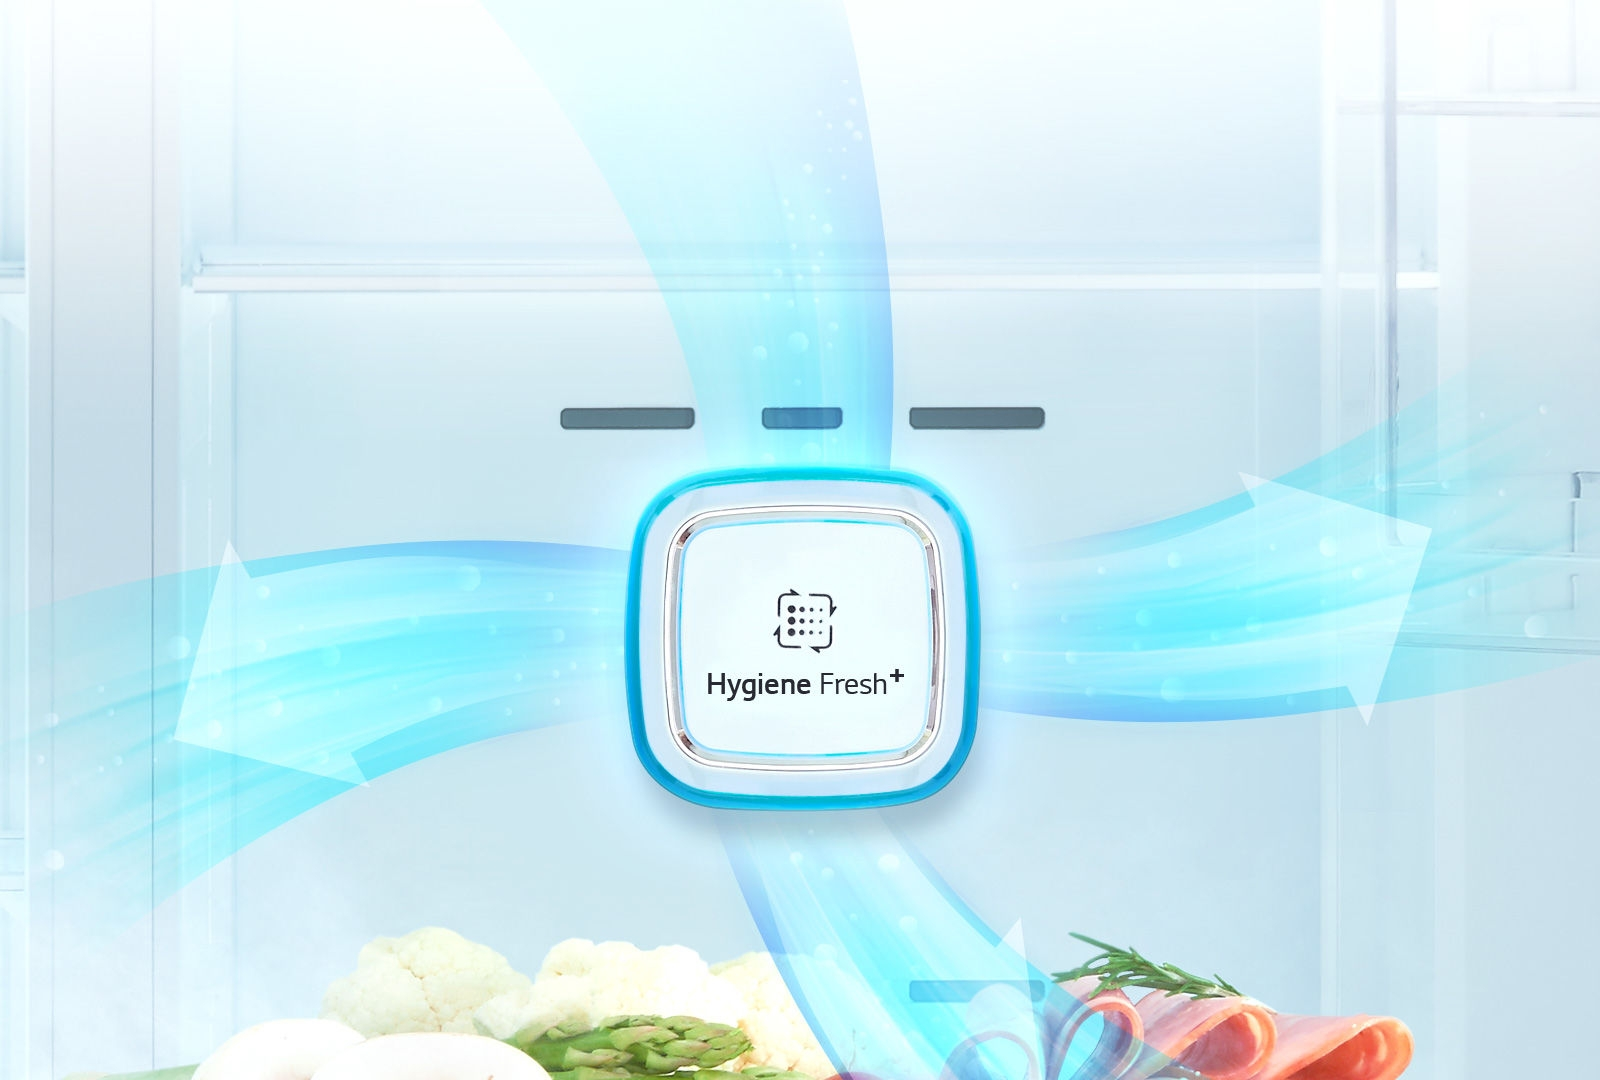 Global_2018_Feature_HygieneFRESH_D